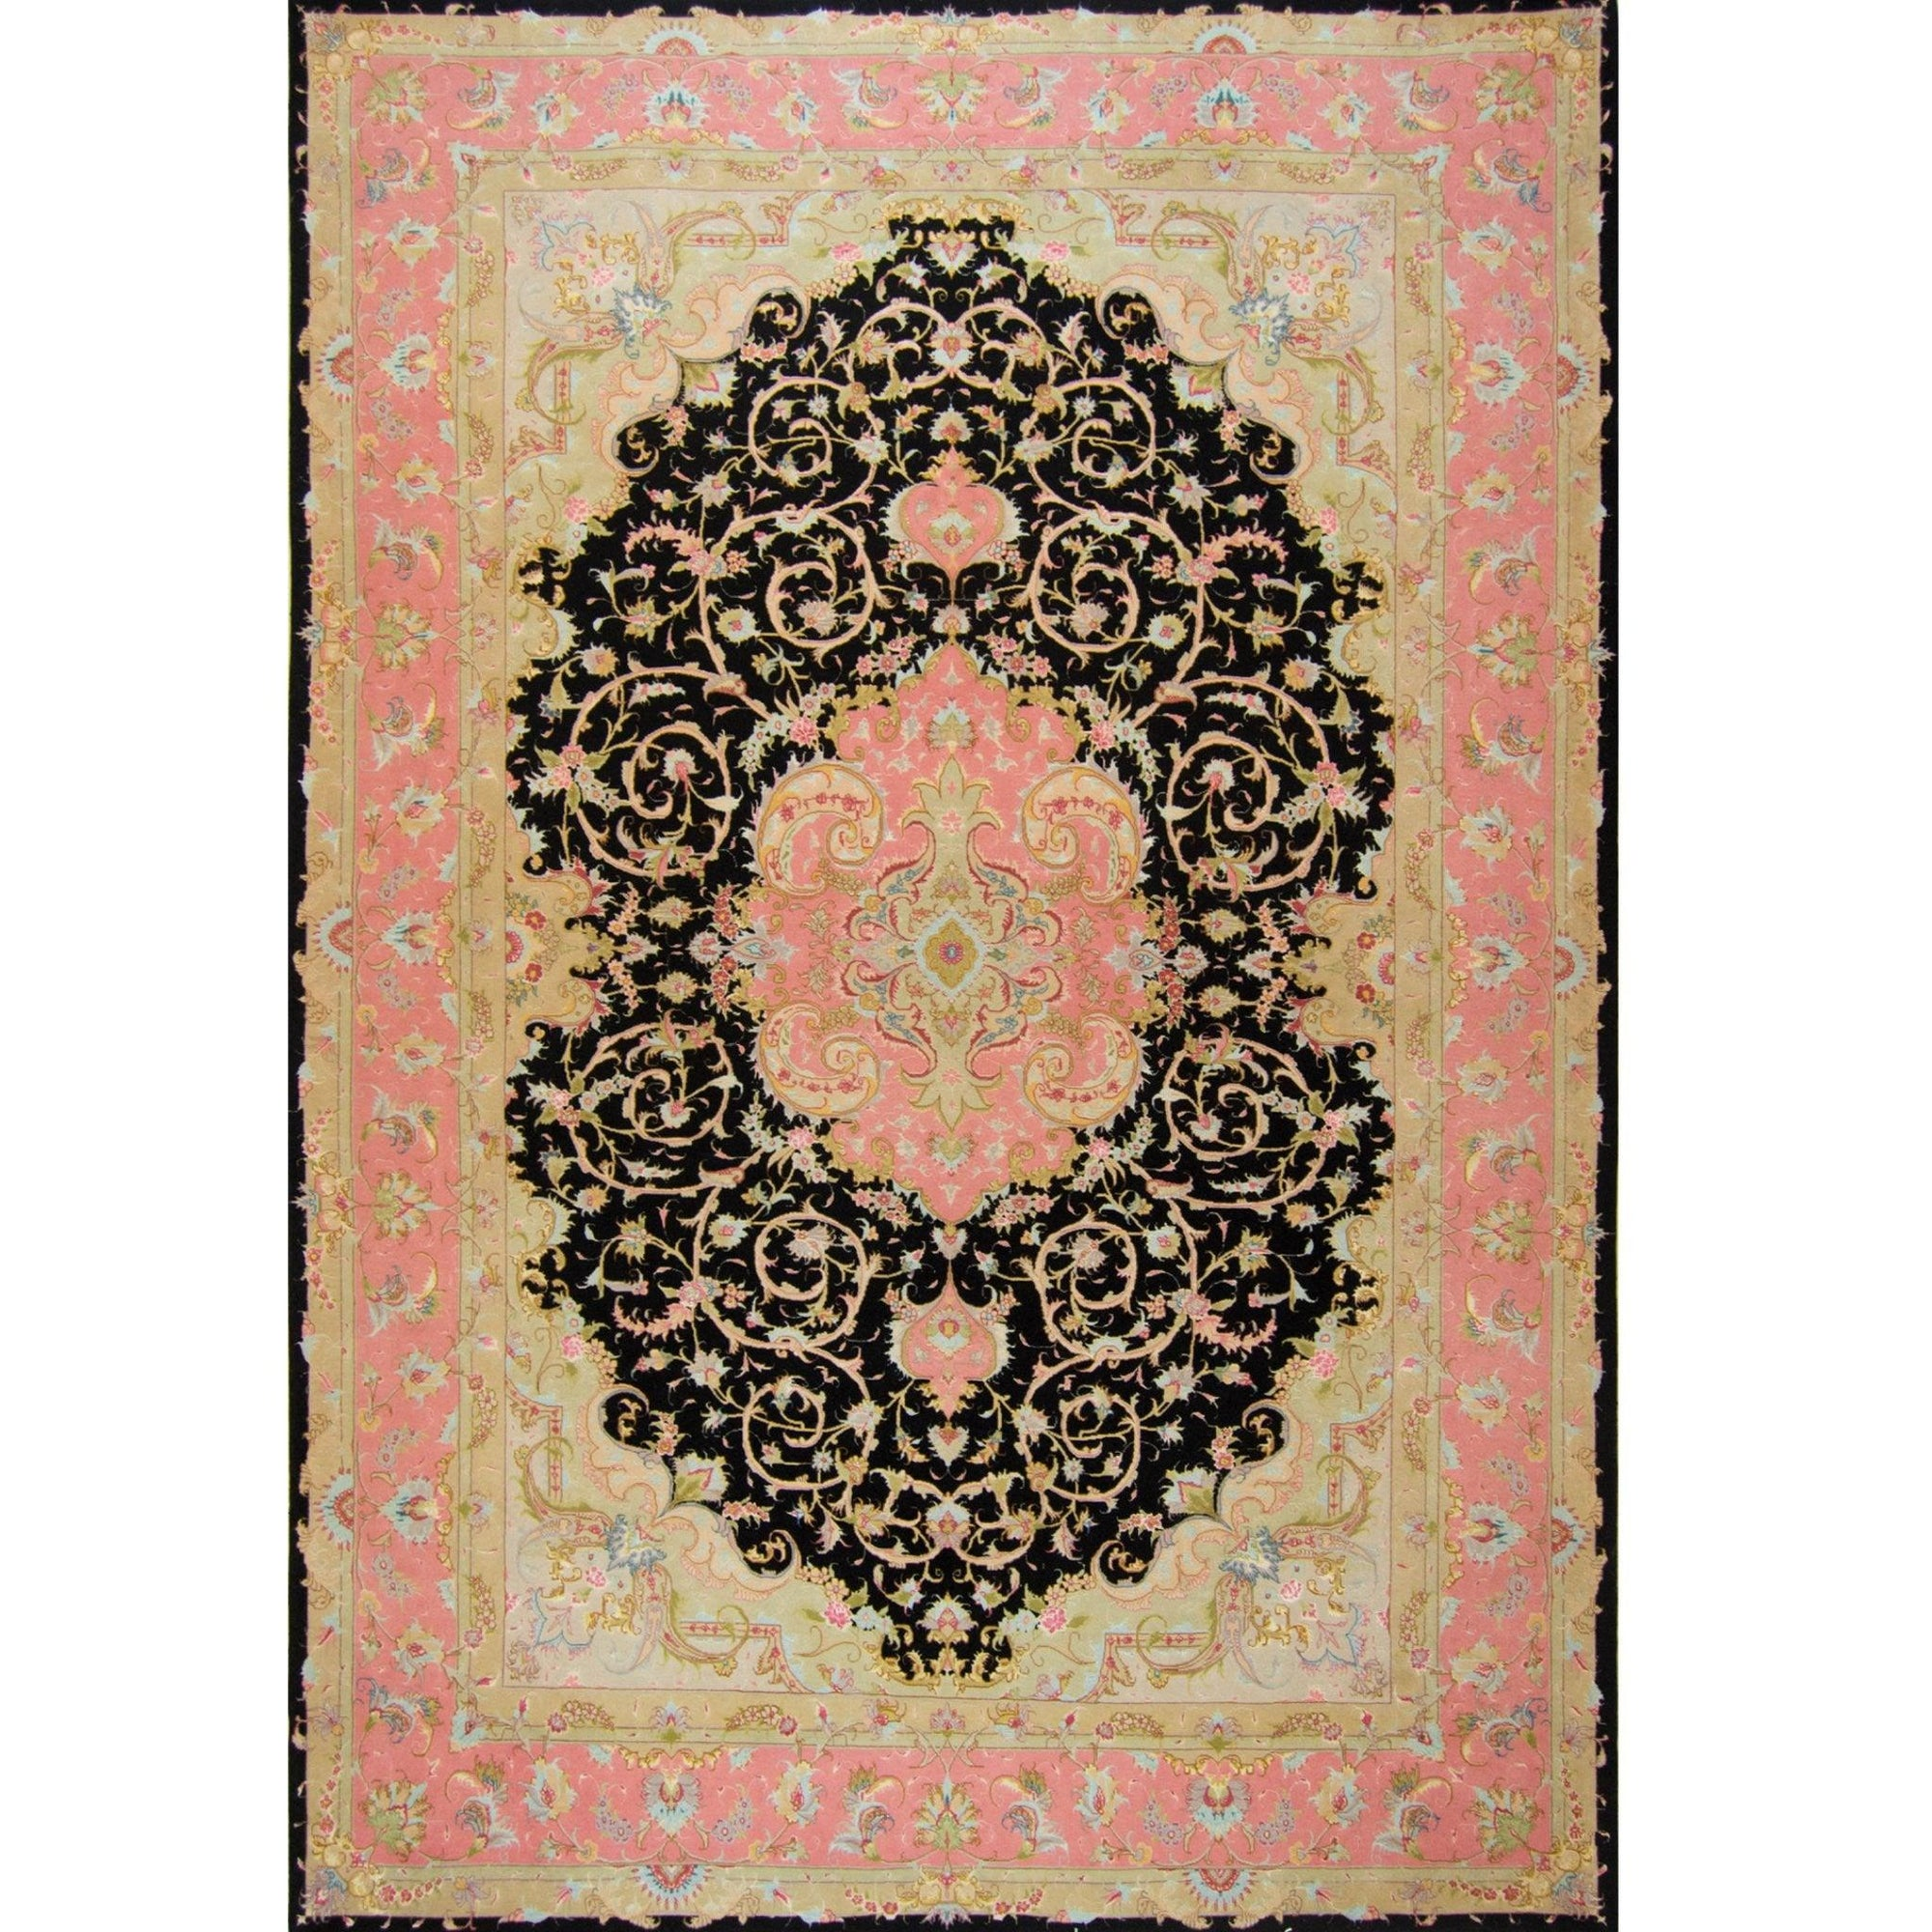 Super Fine Hand-knotted Persian Wool and Silk Tabriz Rug ( SIGNED ) 202 cm x 299 cm Persian-Rug | House-of-Haghi | NewMarket | Auckland | NZ | Handmade Persian Rugs | Hand Knotted Persian Rugs